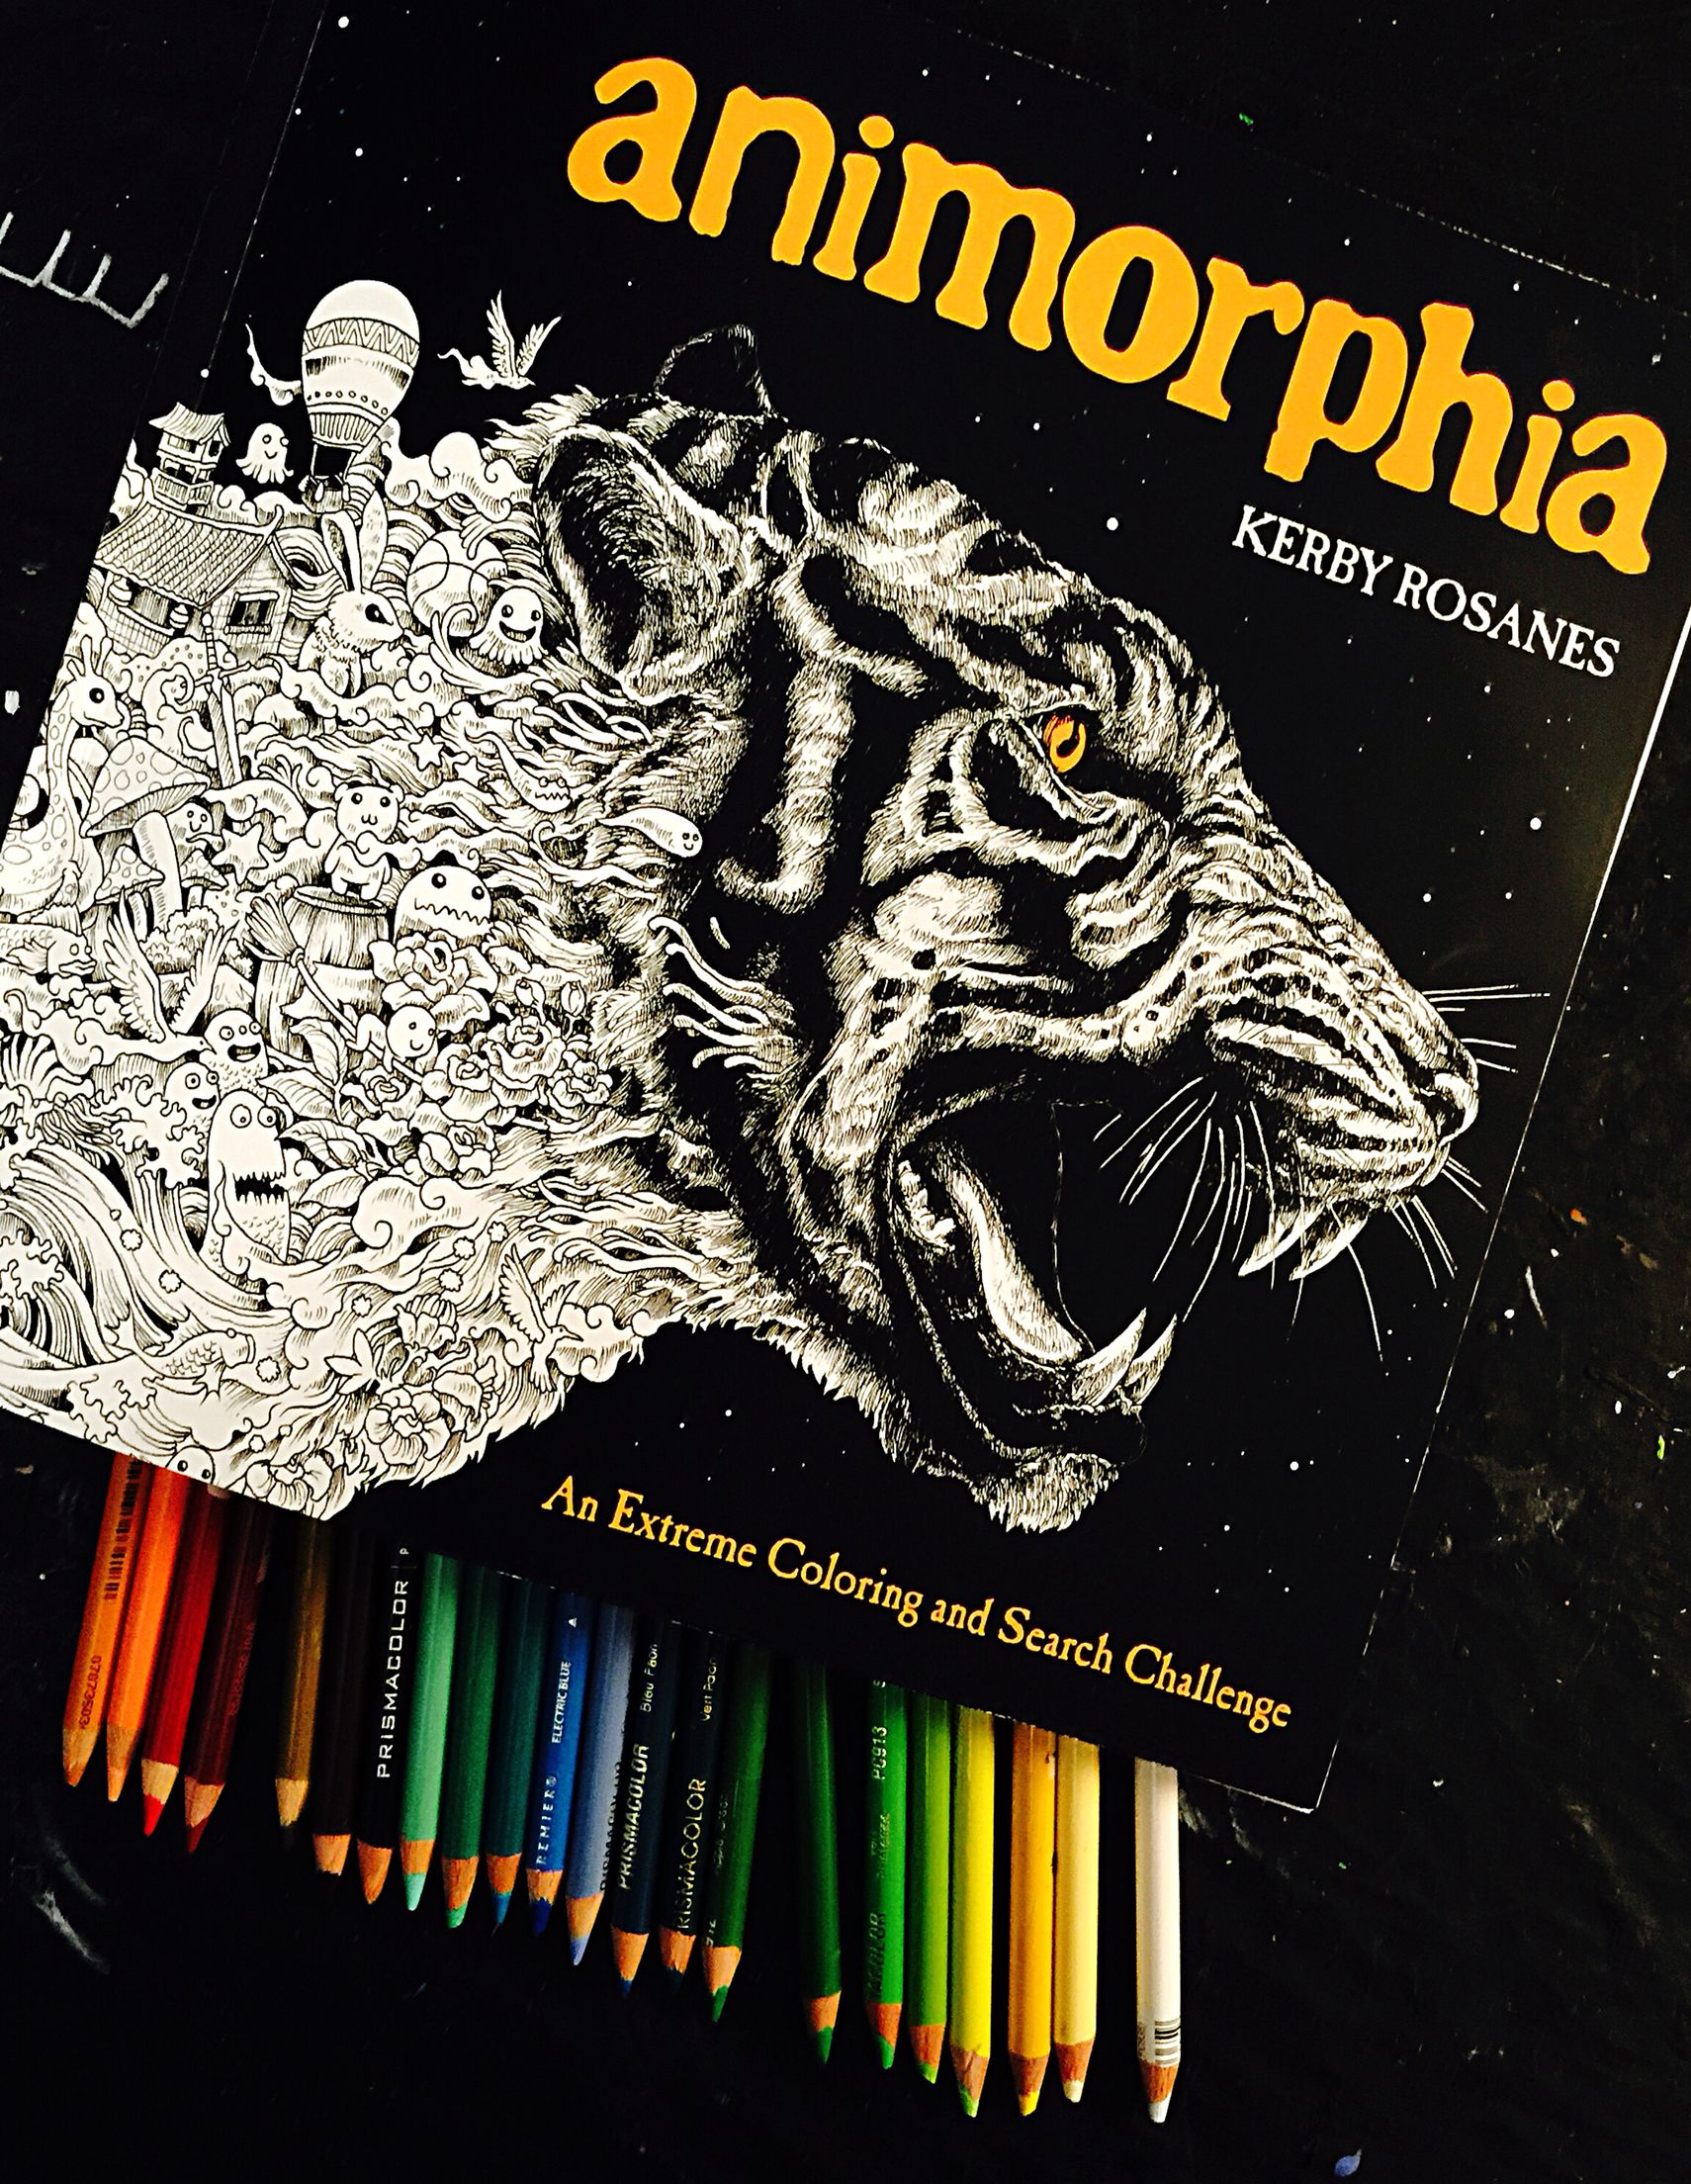 Animorphia an extreme coloring and search challenge by kerby rosanes - Animorphia Color Book My Color Books And Pages Pinterest Colors And Book